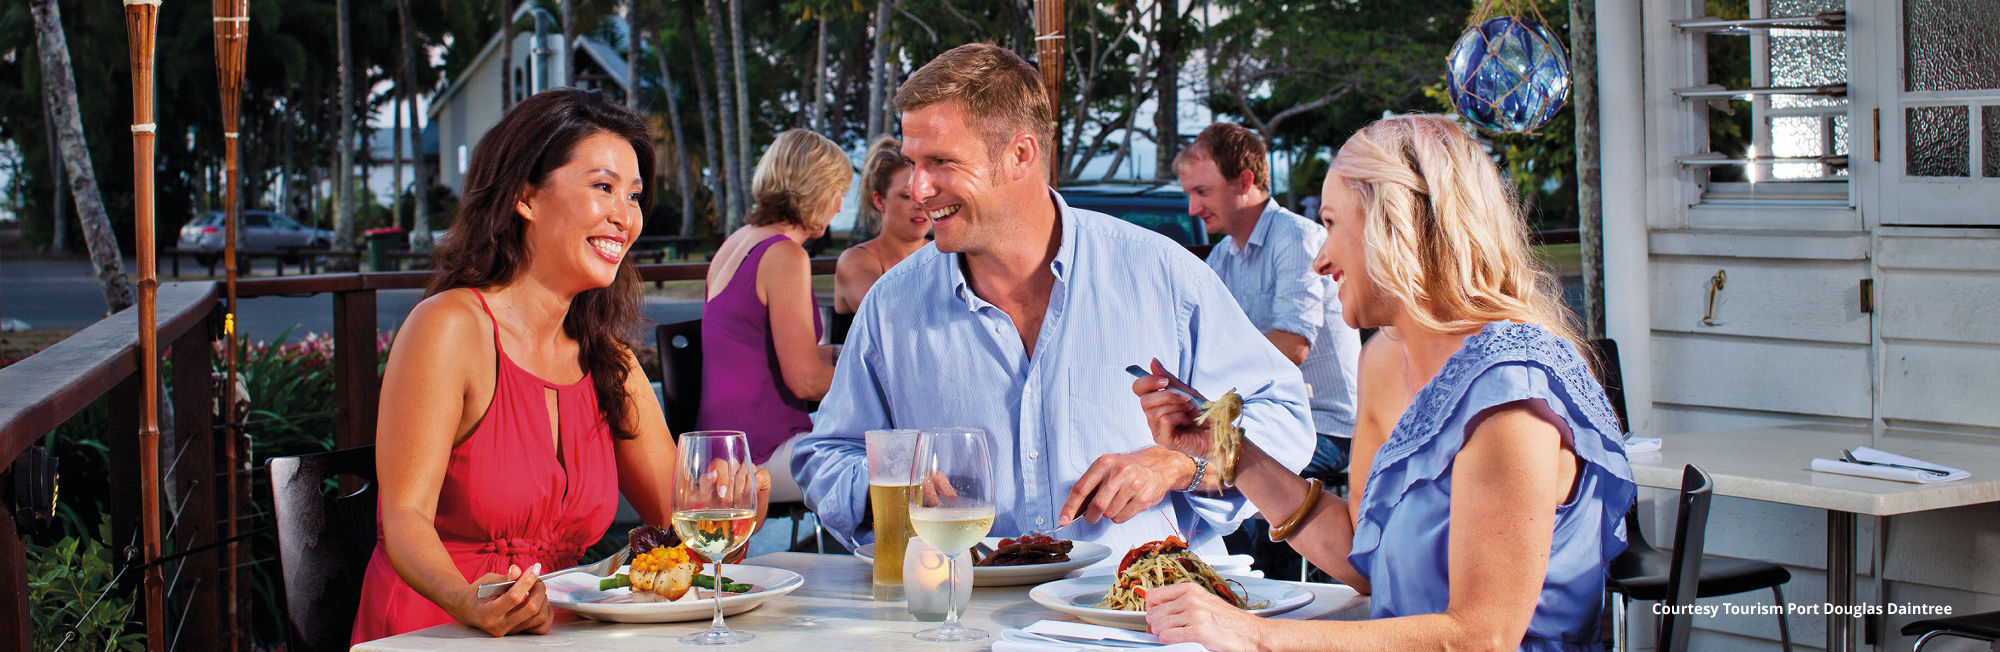 Restaurants, Cafes Port Douglas Right Outside Your door